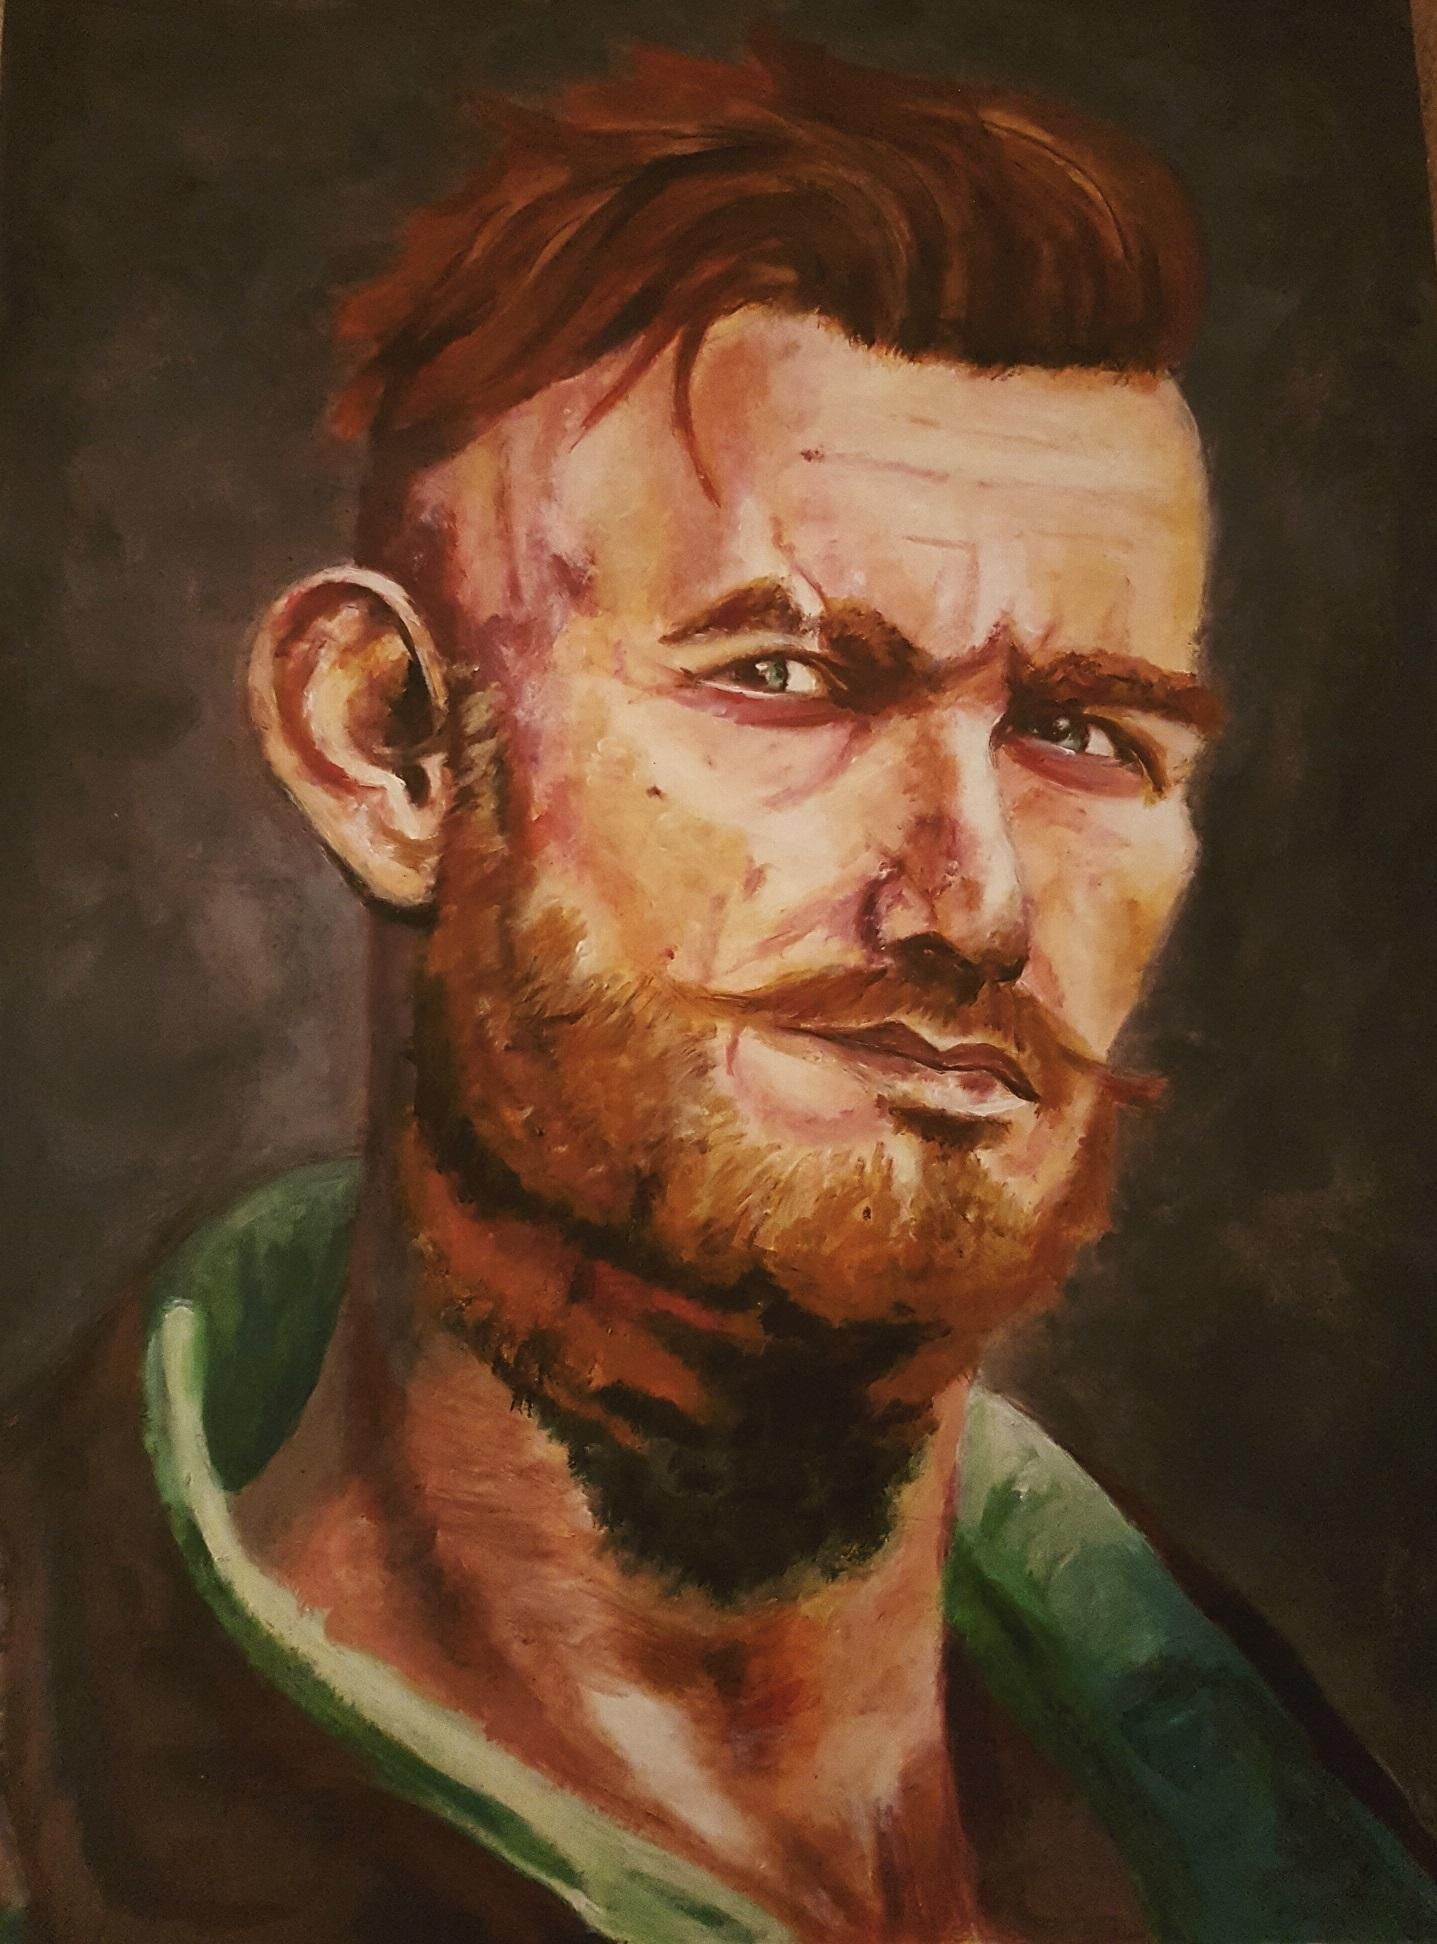 Olgierd von Everec from the witcher Acrylic paint A3 | Art ...